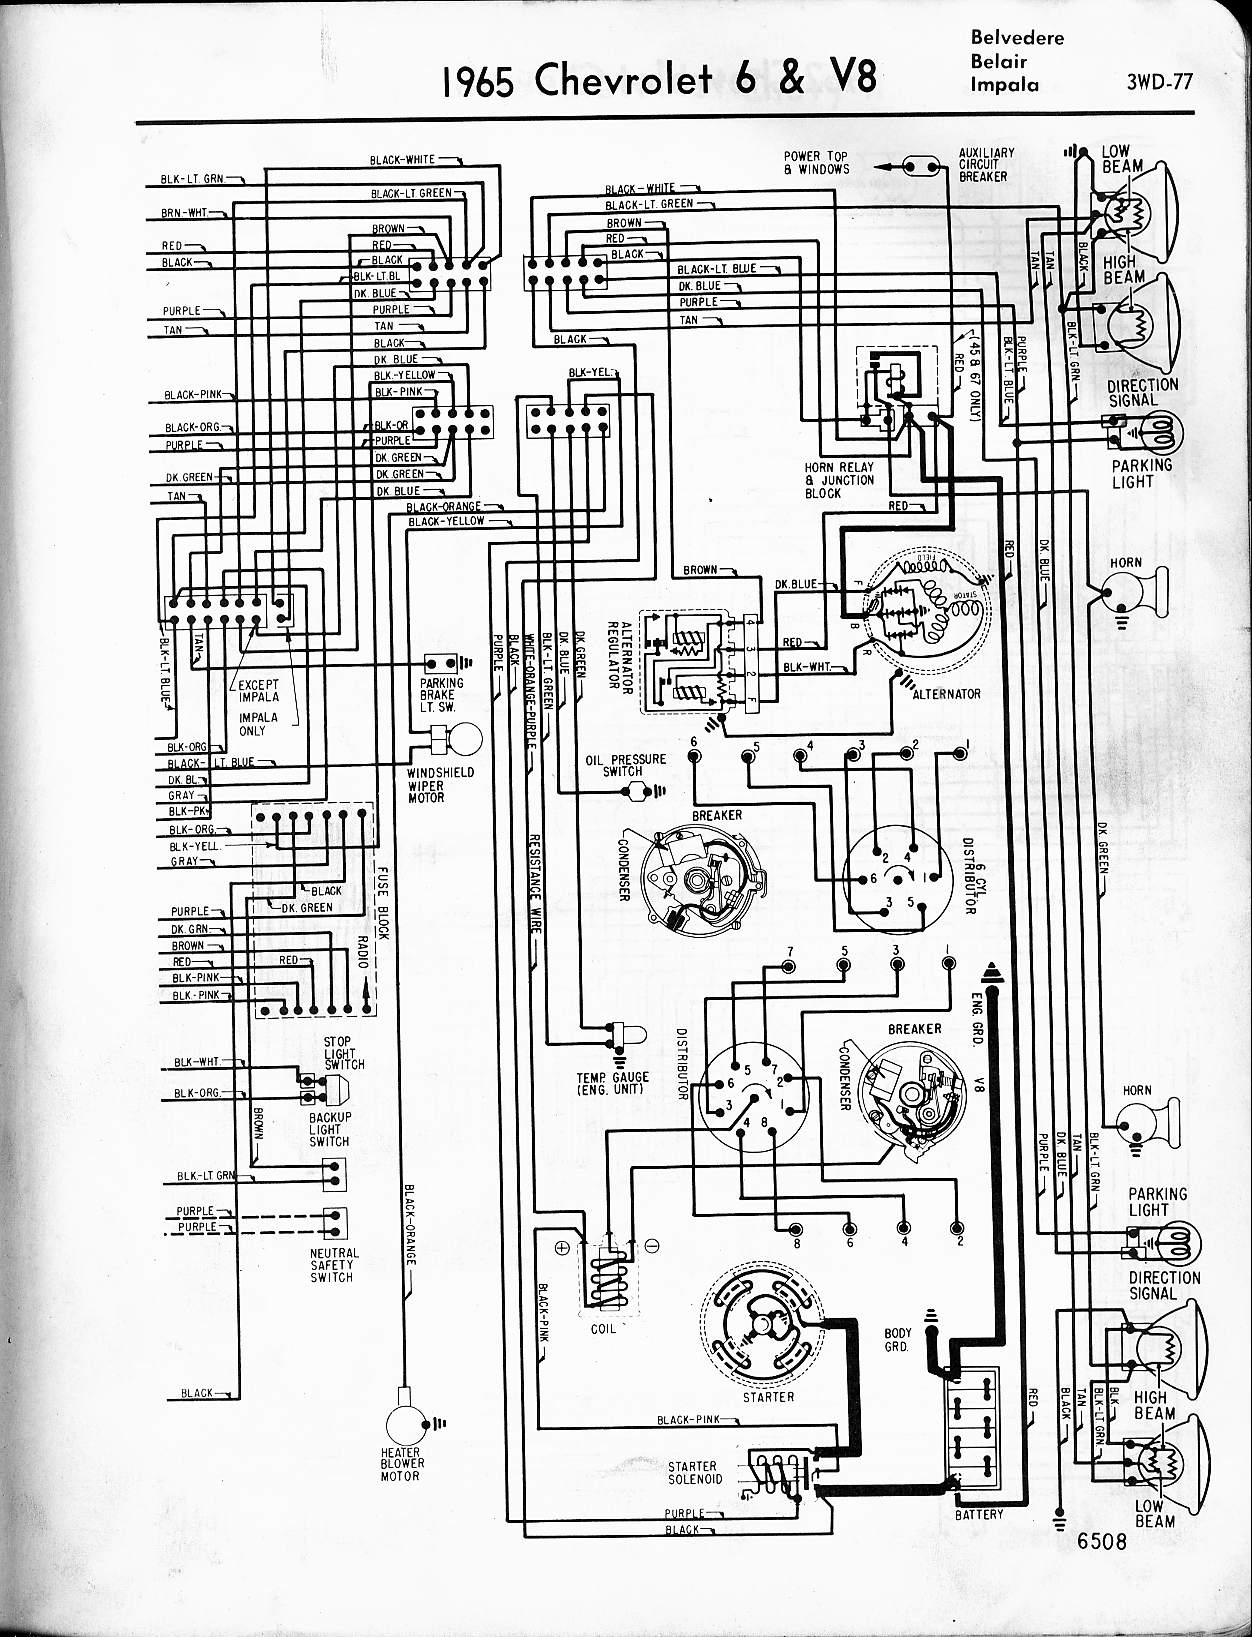 1965 Cj5 Generator Wiring Diagram Library. 1965 Cj5 Generator Wiring Diagram. GM. Boss Rt3 Wiring 2003 GMC At Scoala.co